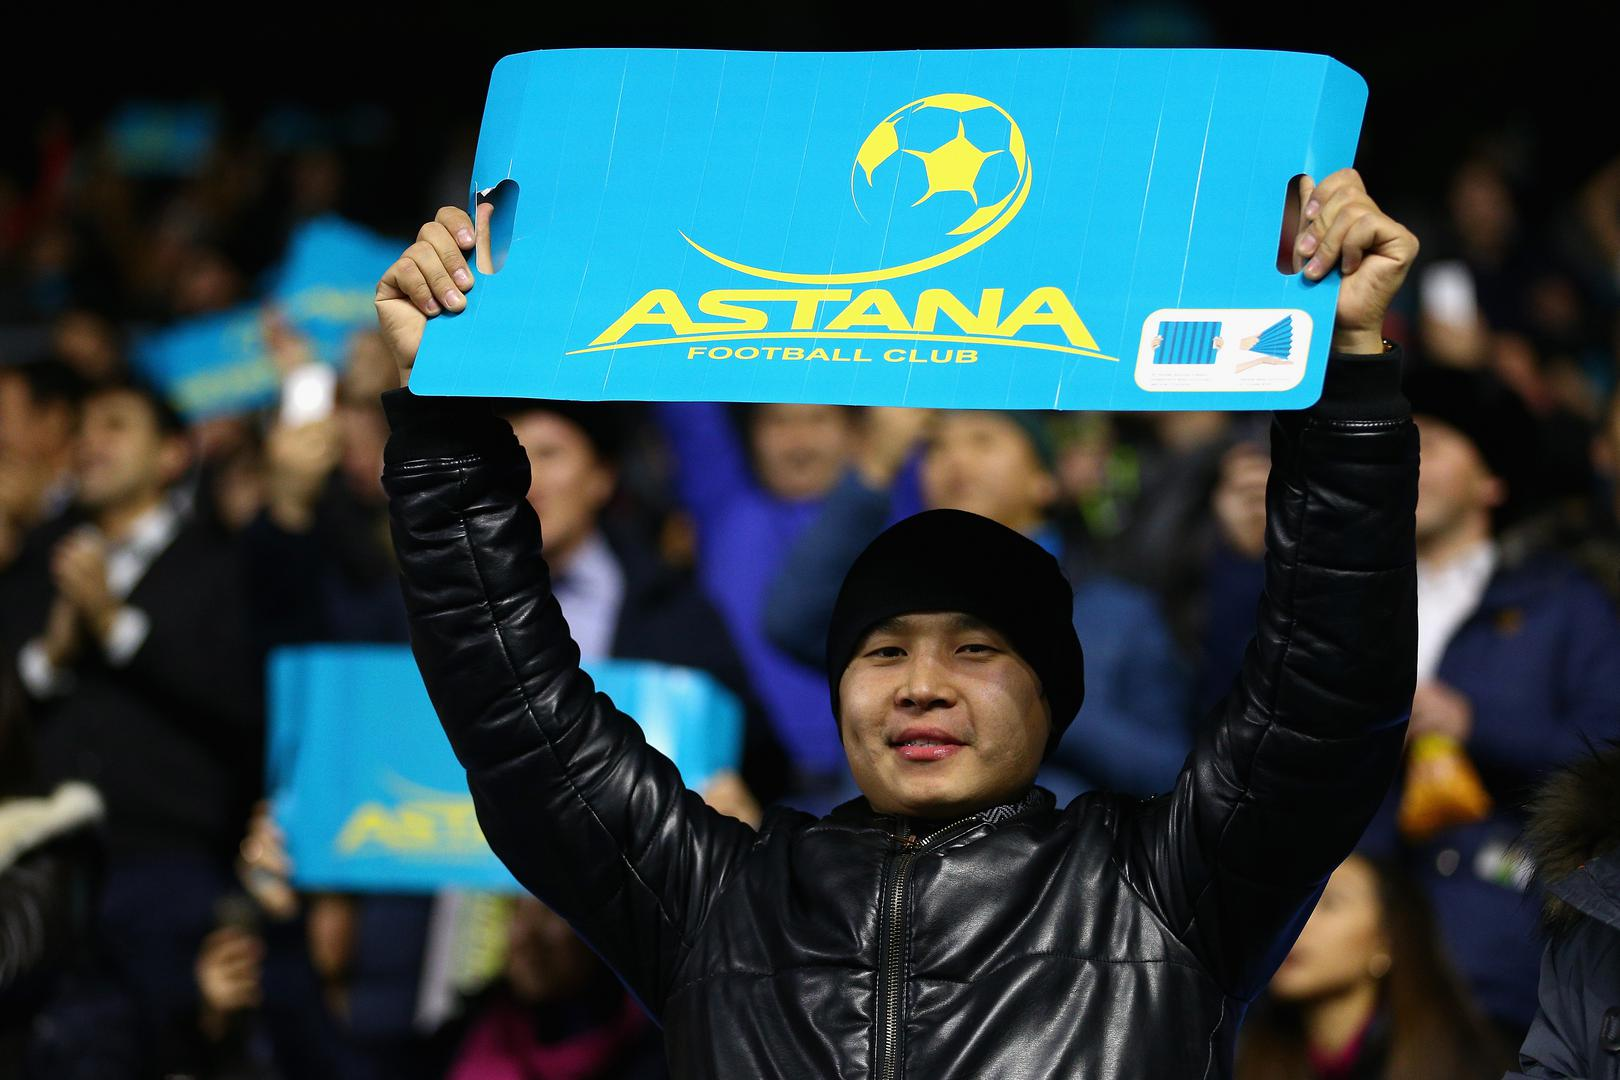 Fan at the Astana Arena,